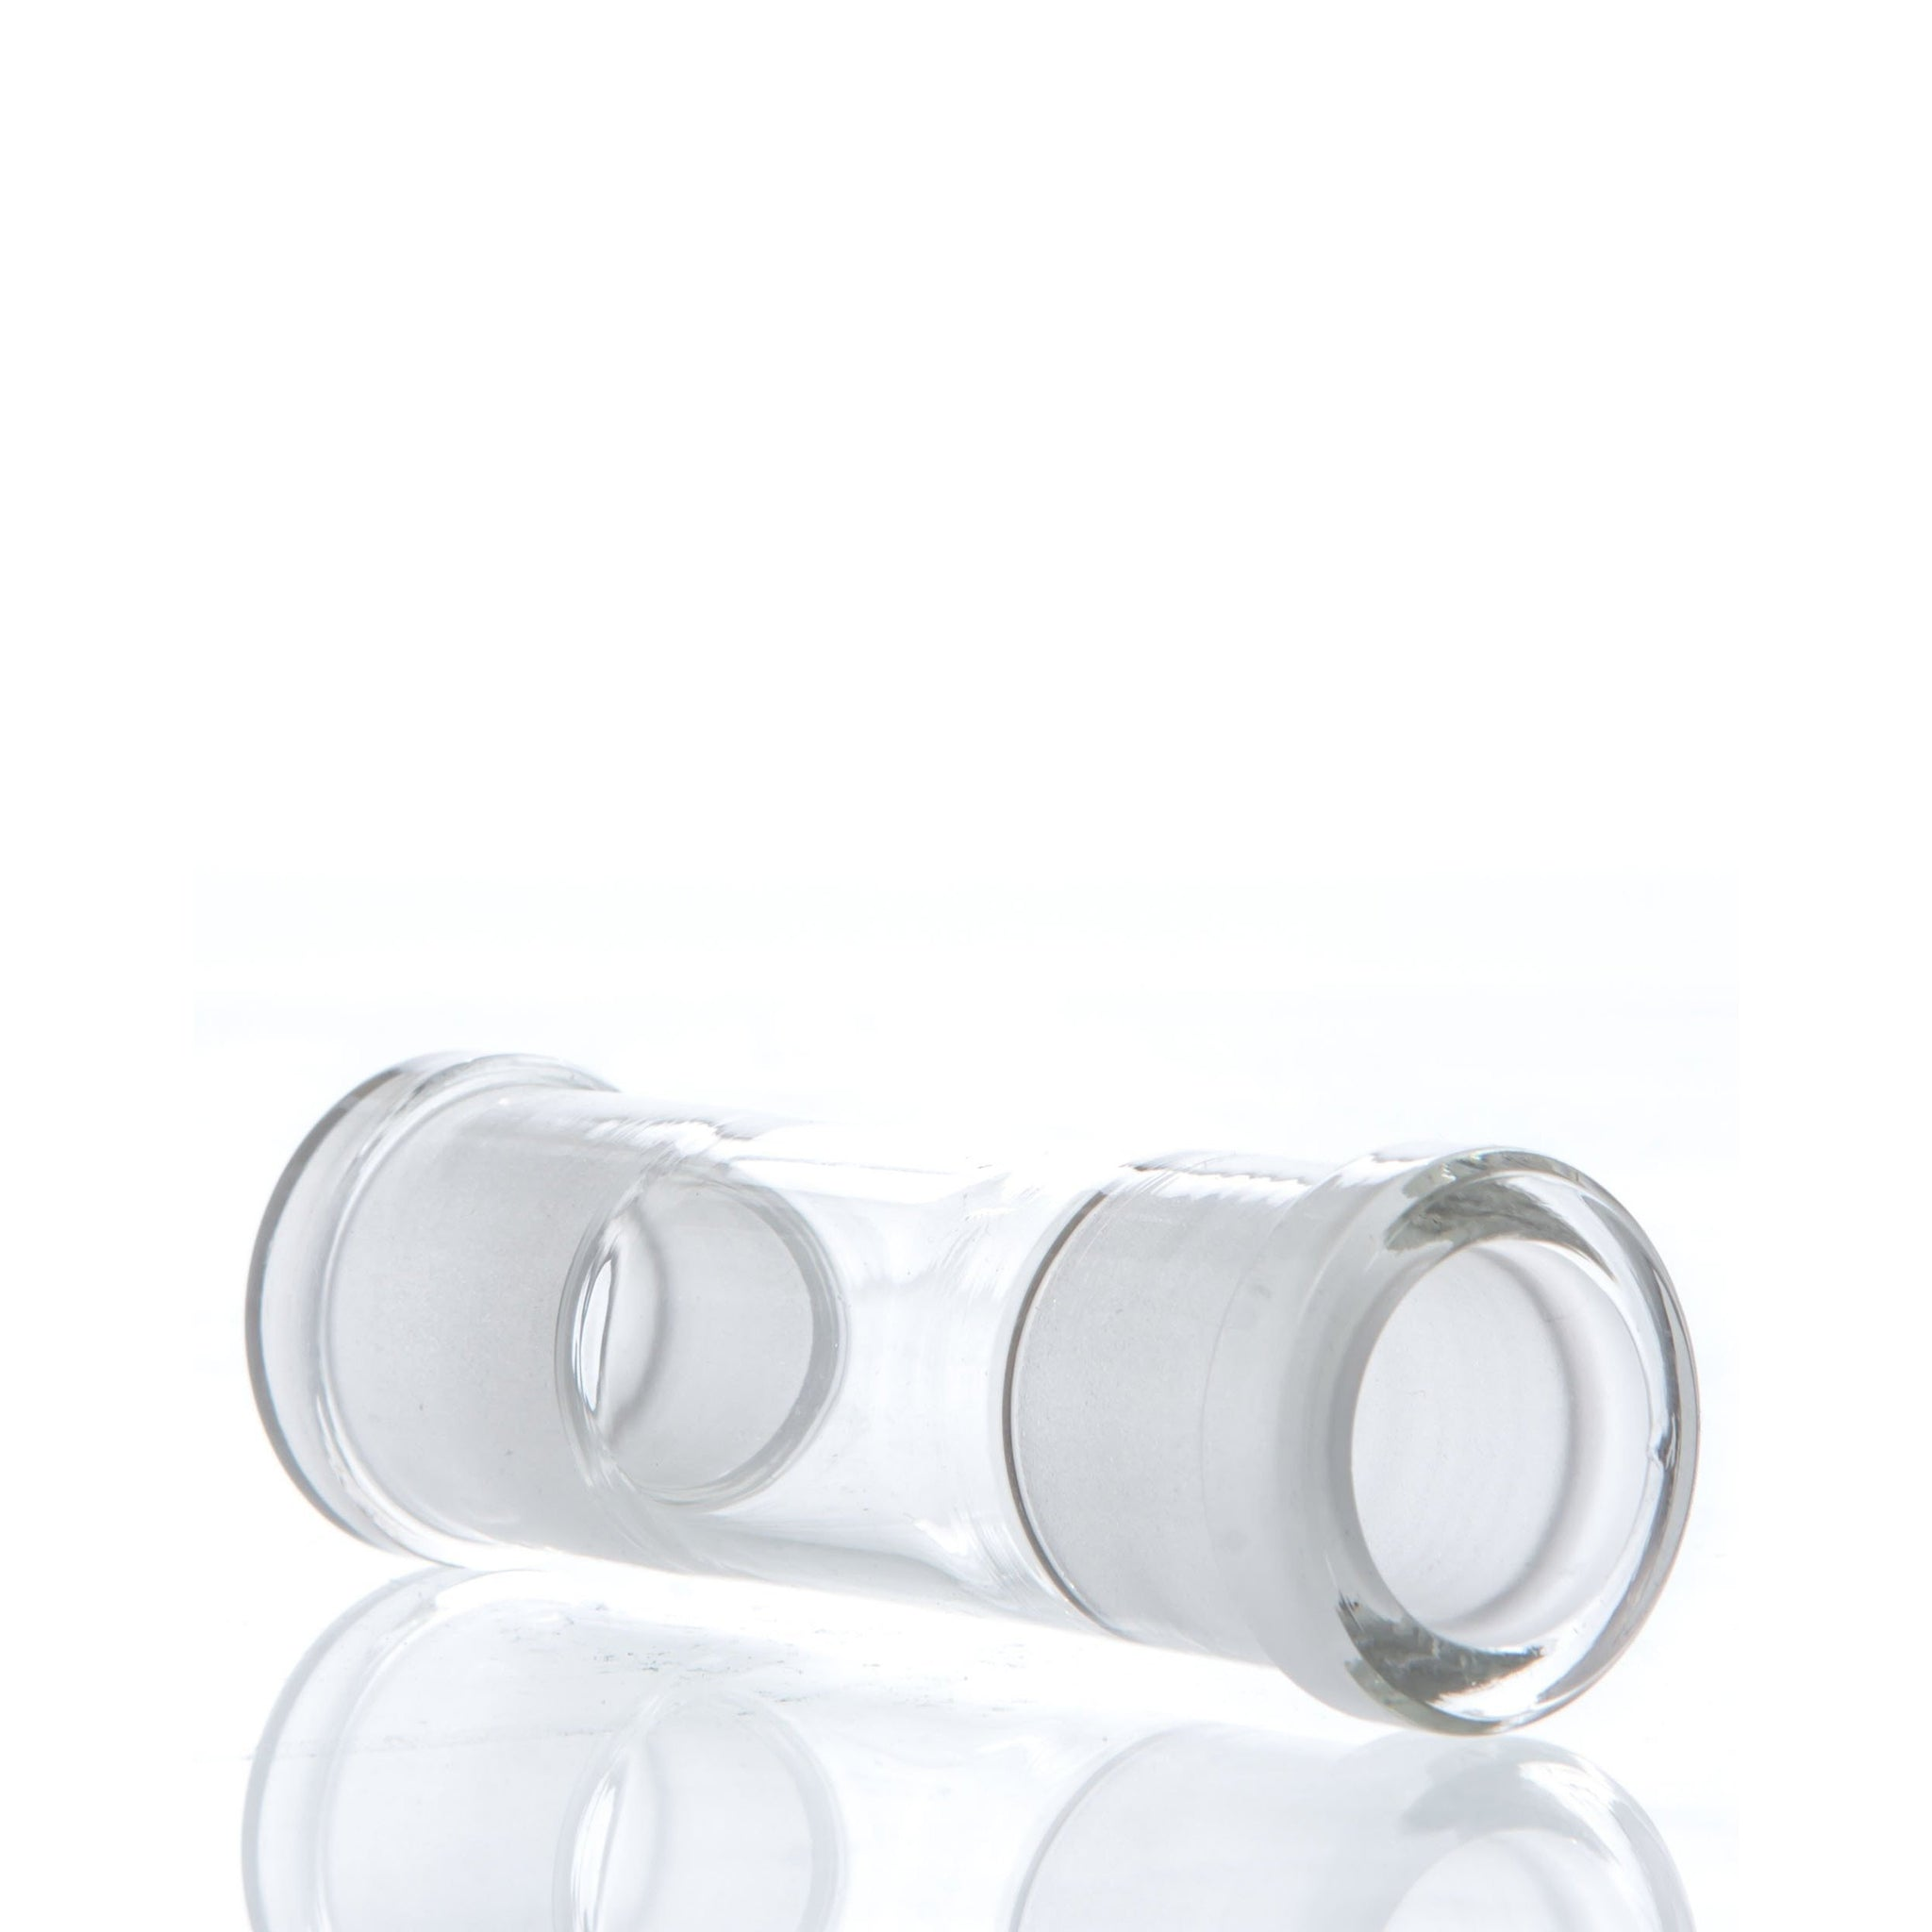 18mm Female to Female Glass Adapter